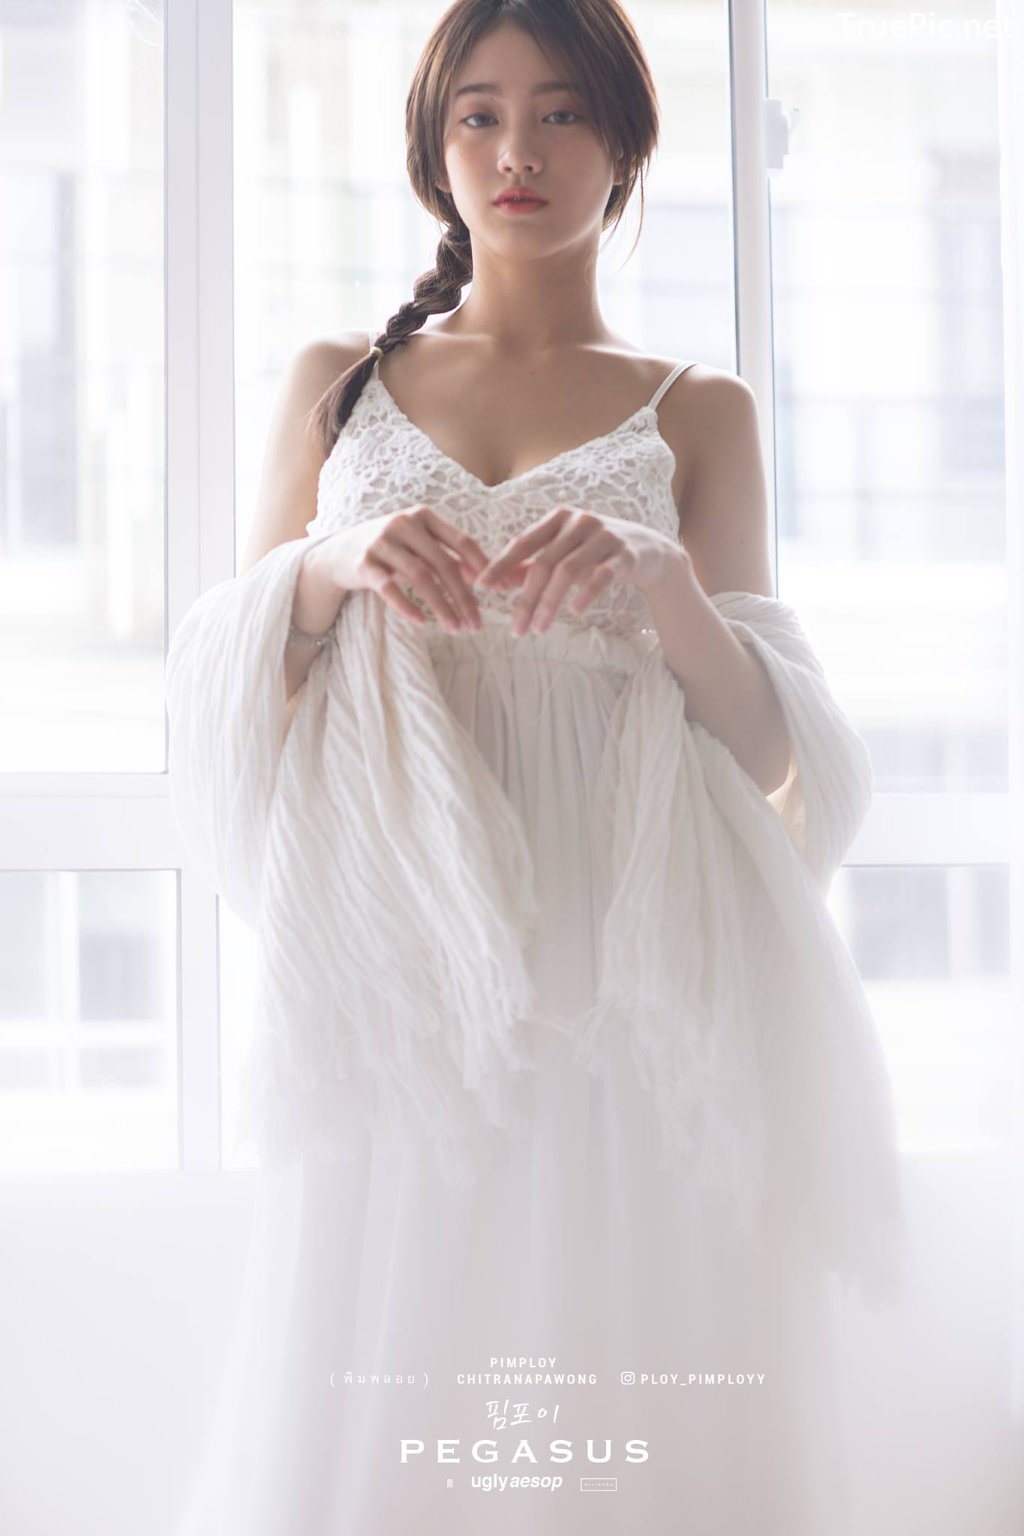 Image Thailand Model - Pimploy Chitranapawong - Beautiful In White - TruePic.net - Picture-4